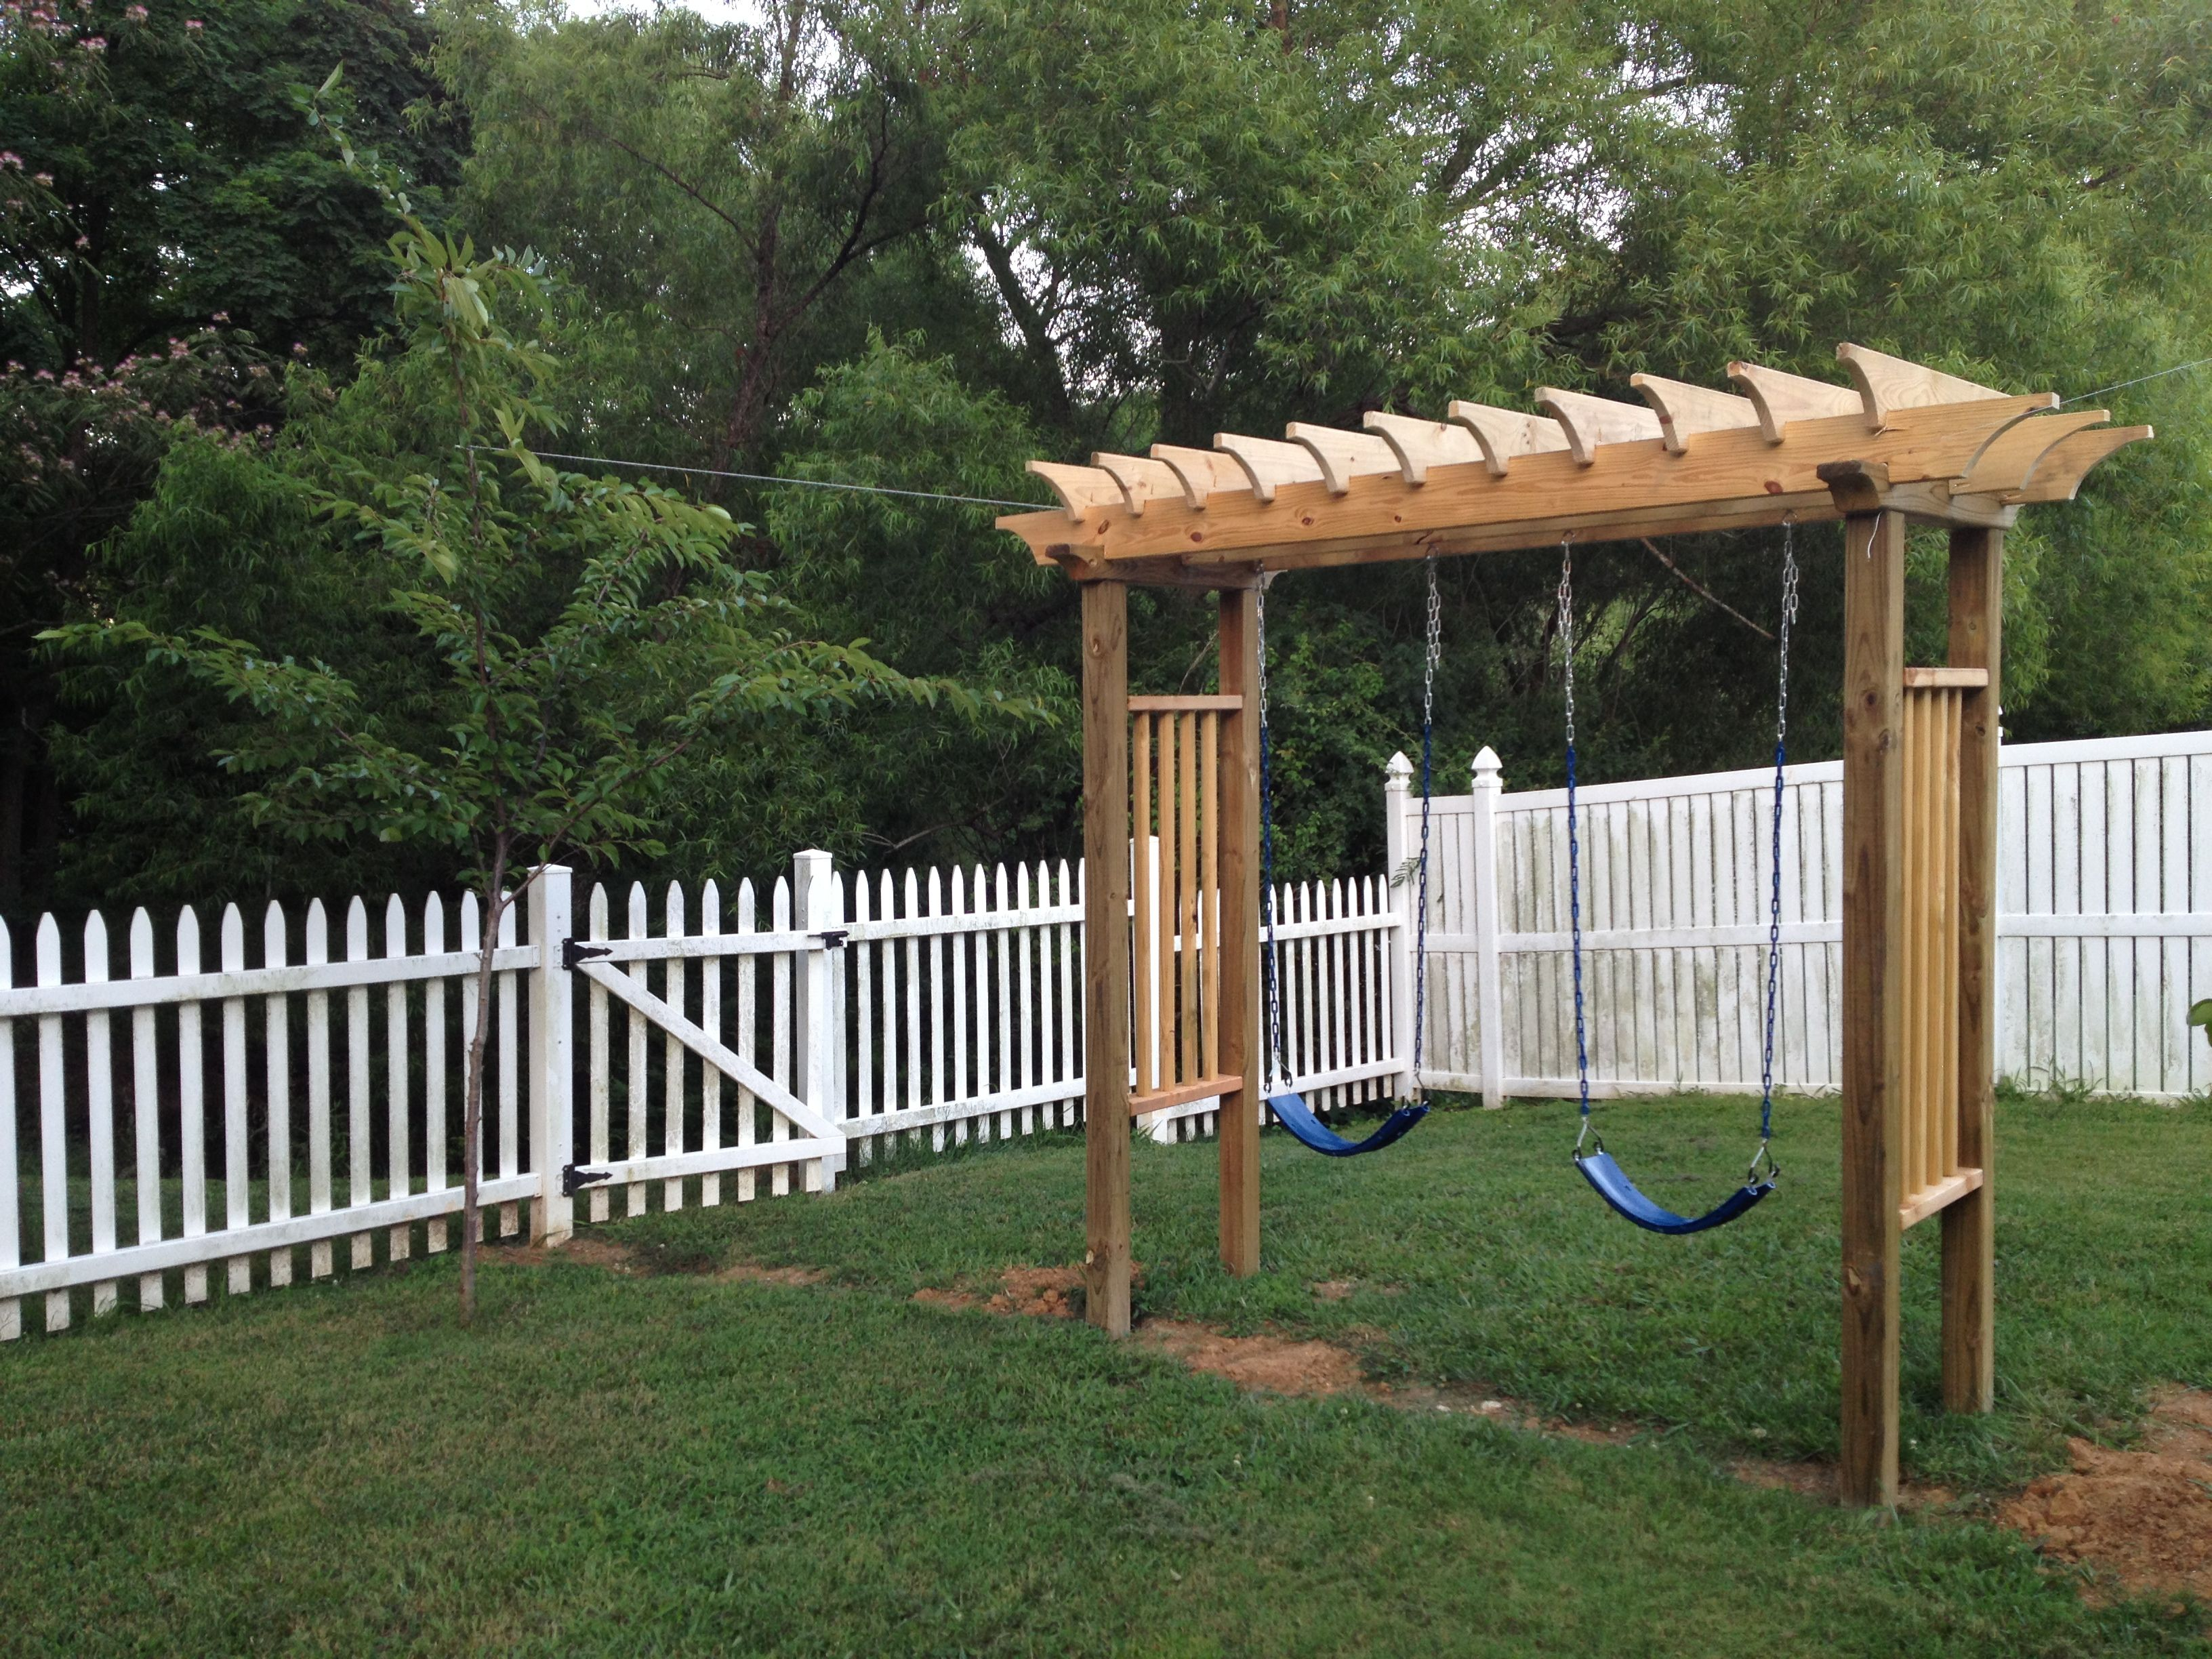 Gratis Tuin Makeover This Is The New Swing Set I Just Built For The Kids When They